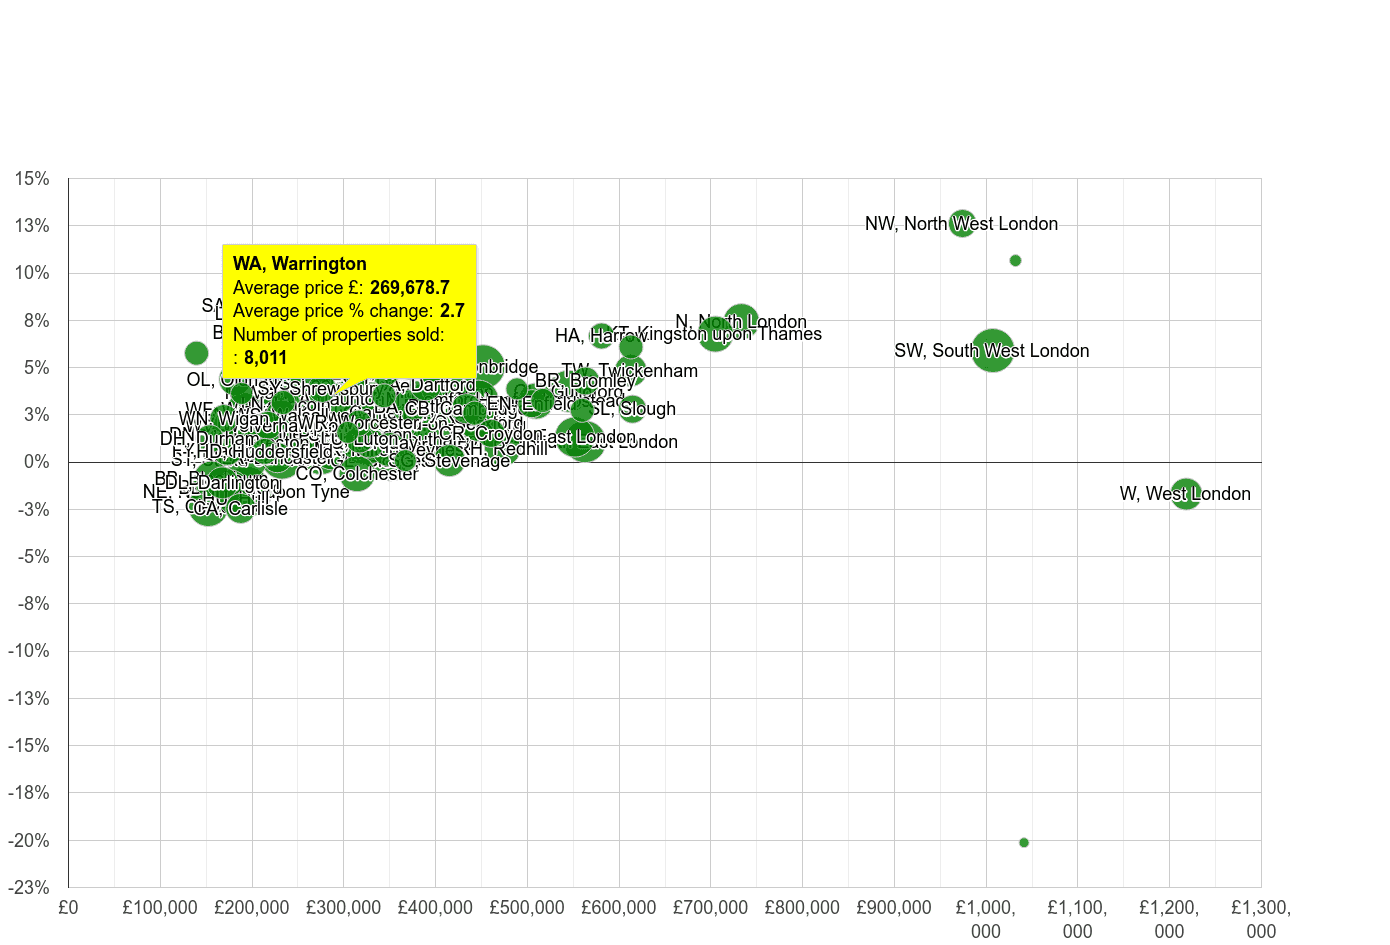 Warrington house prices compared to other areas